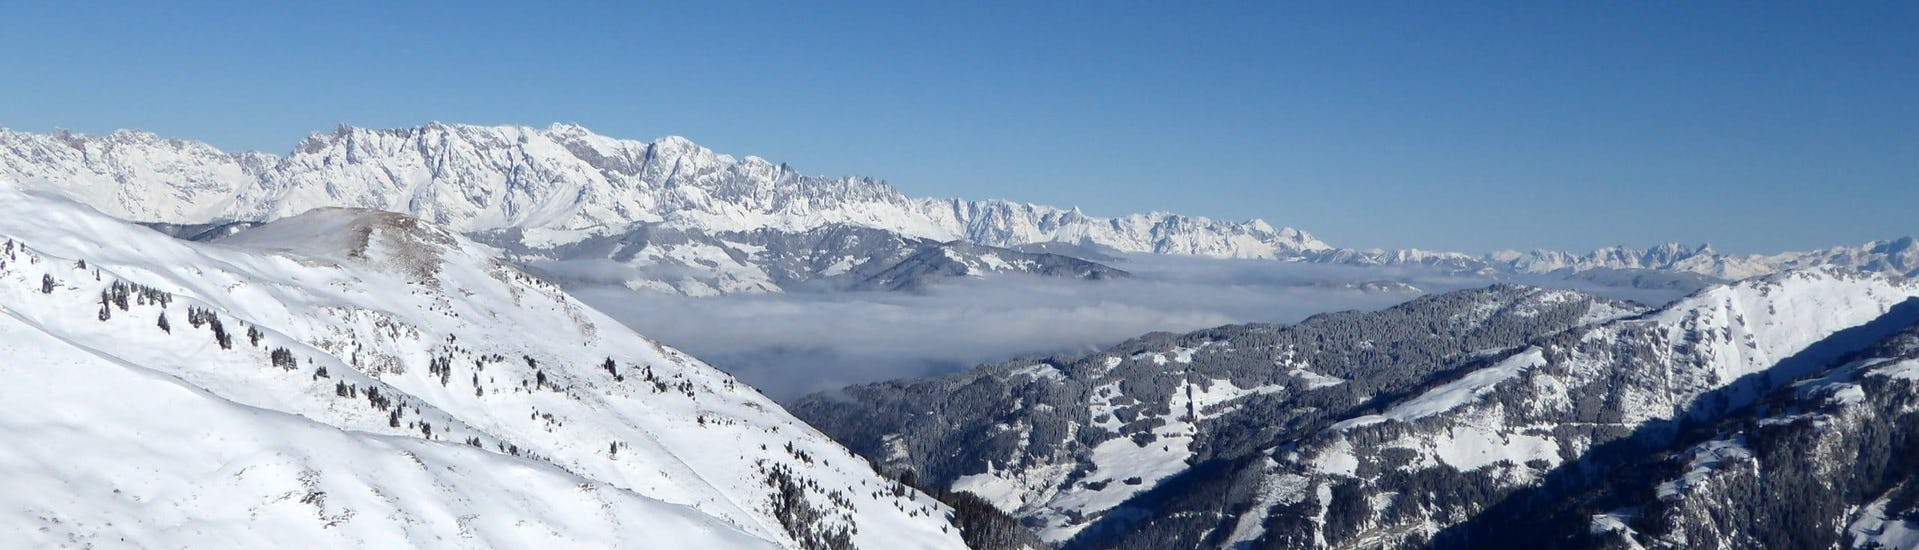 View over the sunny mountain landscape while learning to ski with the ski schools in Rauris-Hochalmbahnen.